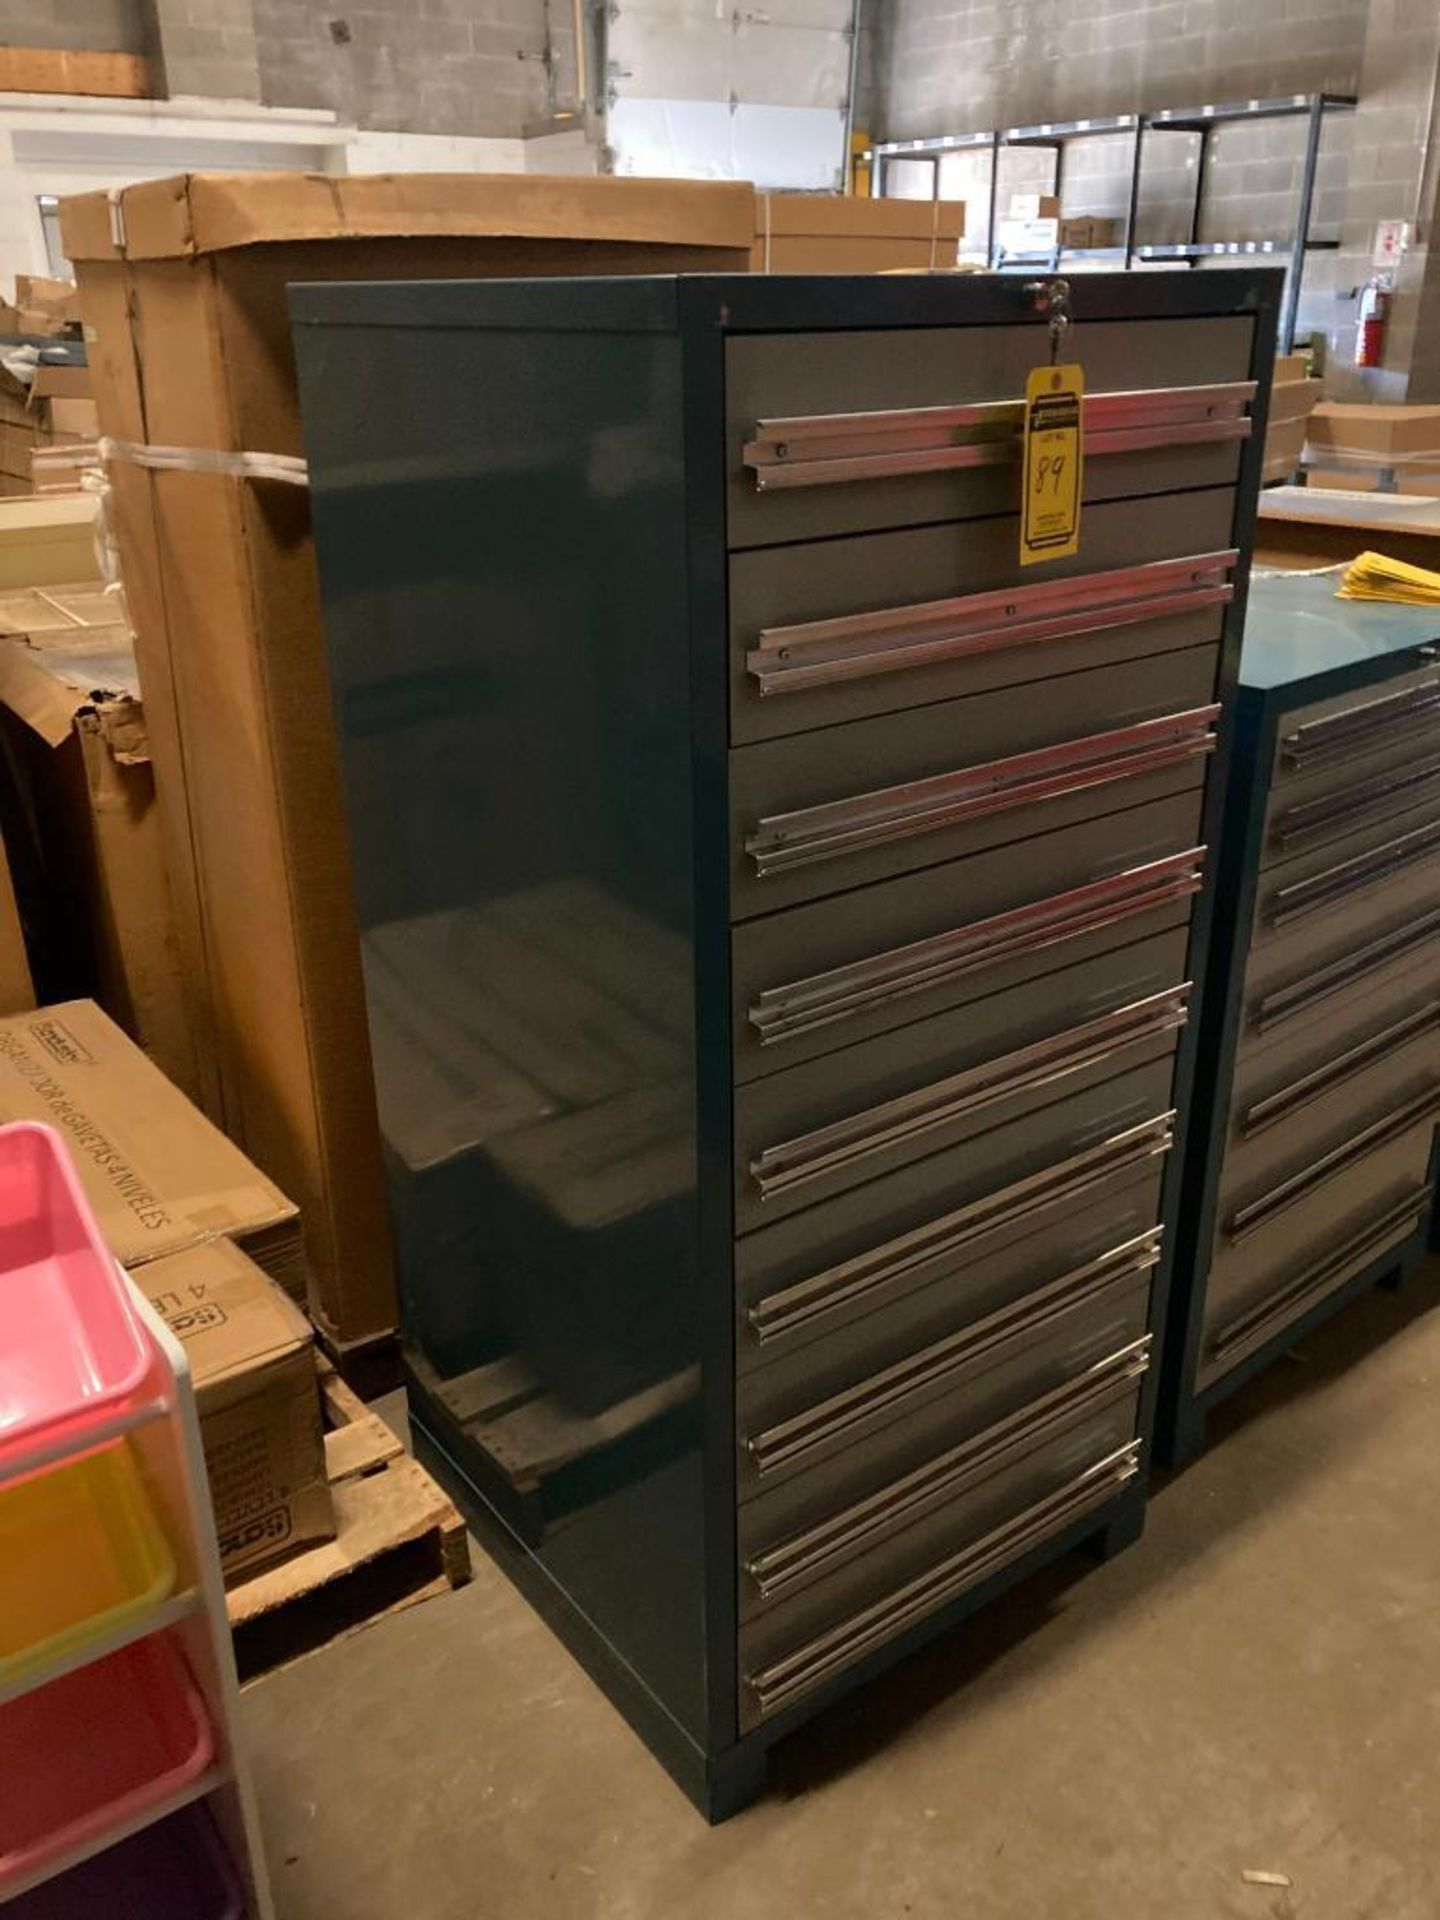 (NEW) EDSAL 9-DRAWER HEAVY DUTY MODULAR TOOLING CABINET, 28.25''W X 61.5''H X 28.25''D, MODEL MDC-9 - Image 2 of 2